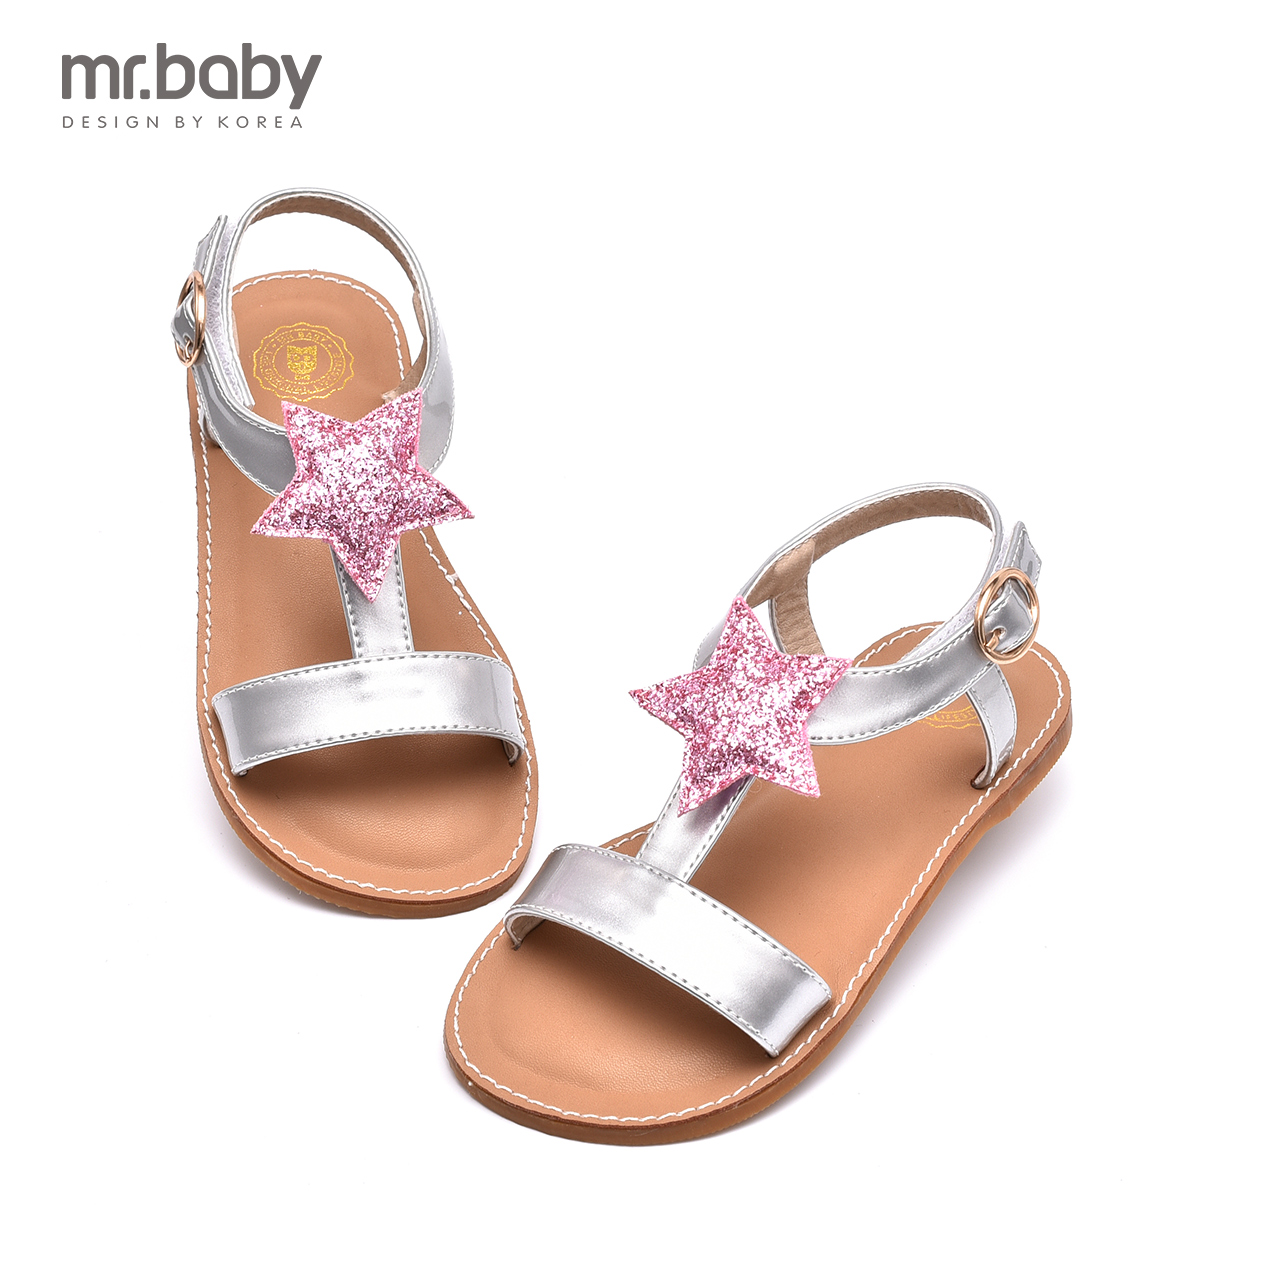 Mr. baby korean girls pentagram boy shoes sandals 2016 summer new children's sandals beach fashion